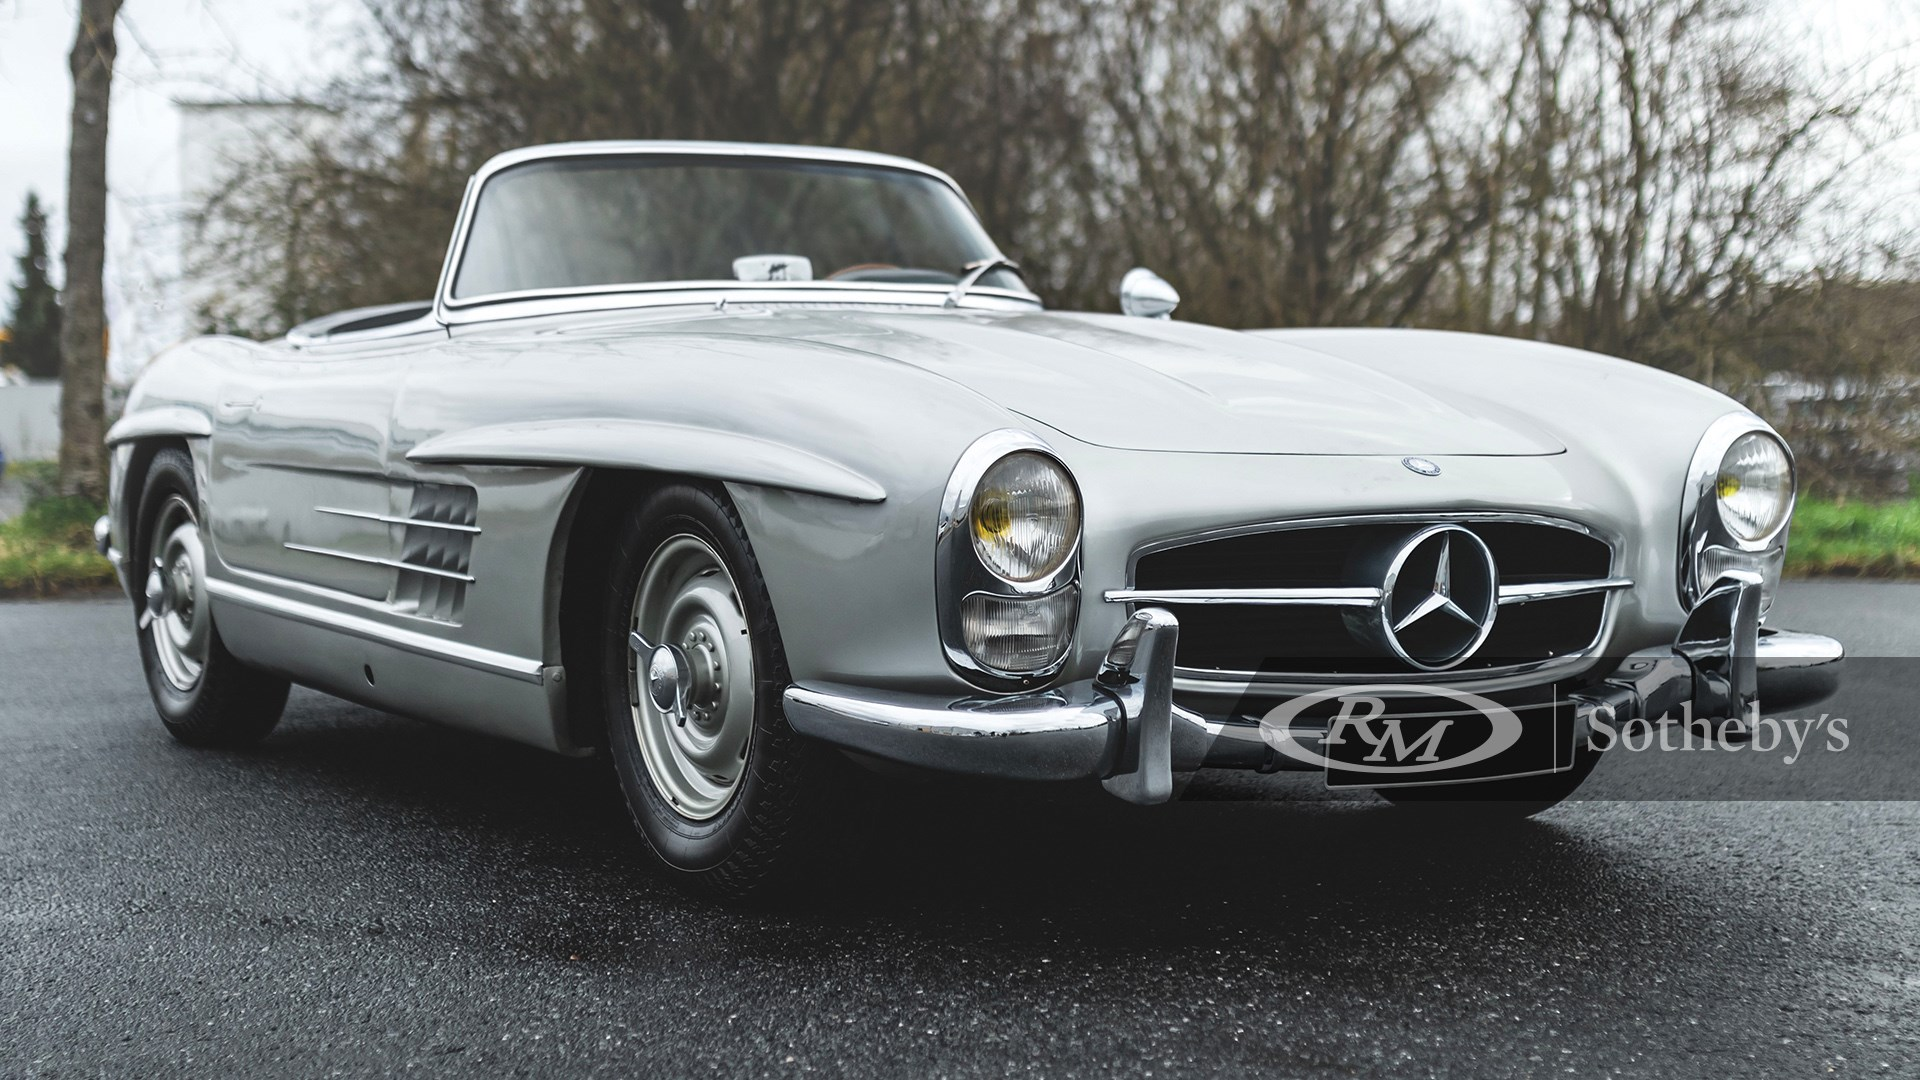 The European Sale Featuring The Petitjean Collection, 1958 Mercedes-Benz 300 SL Roadster